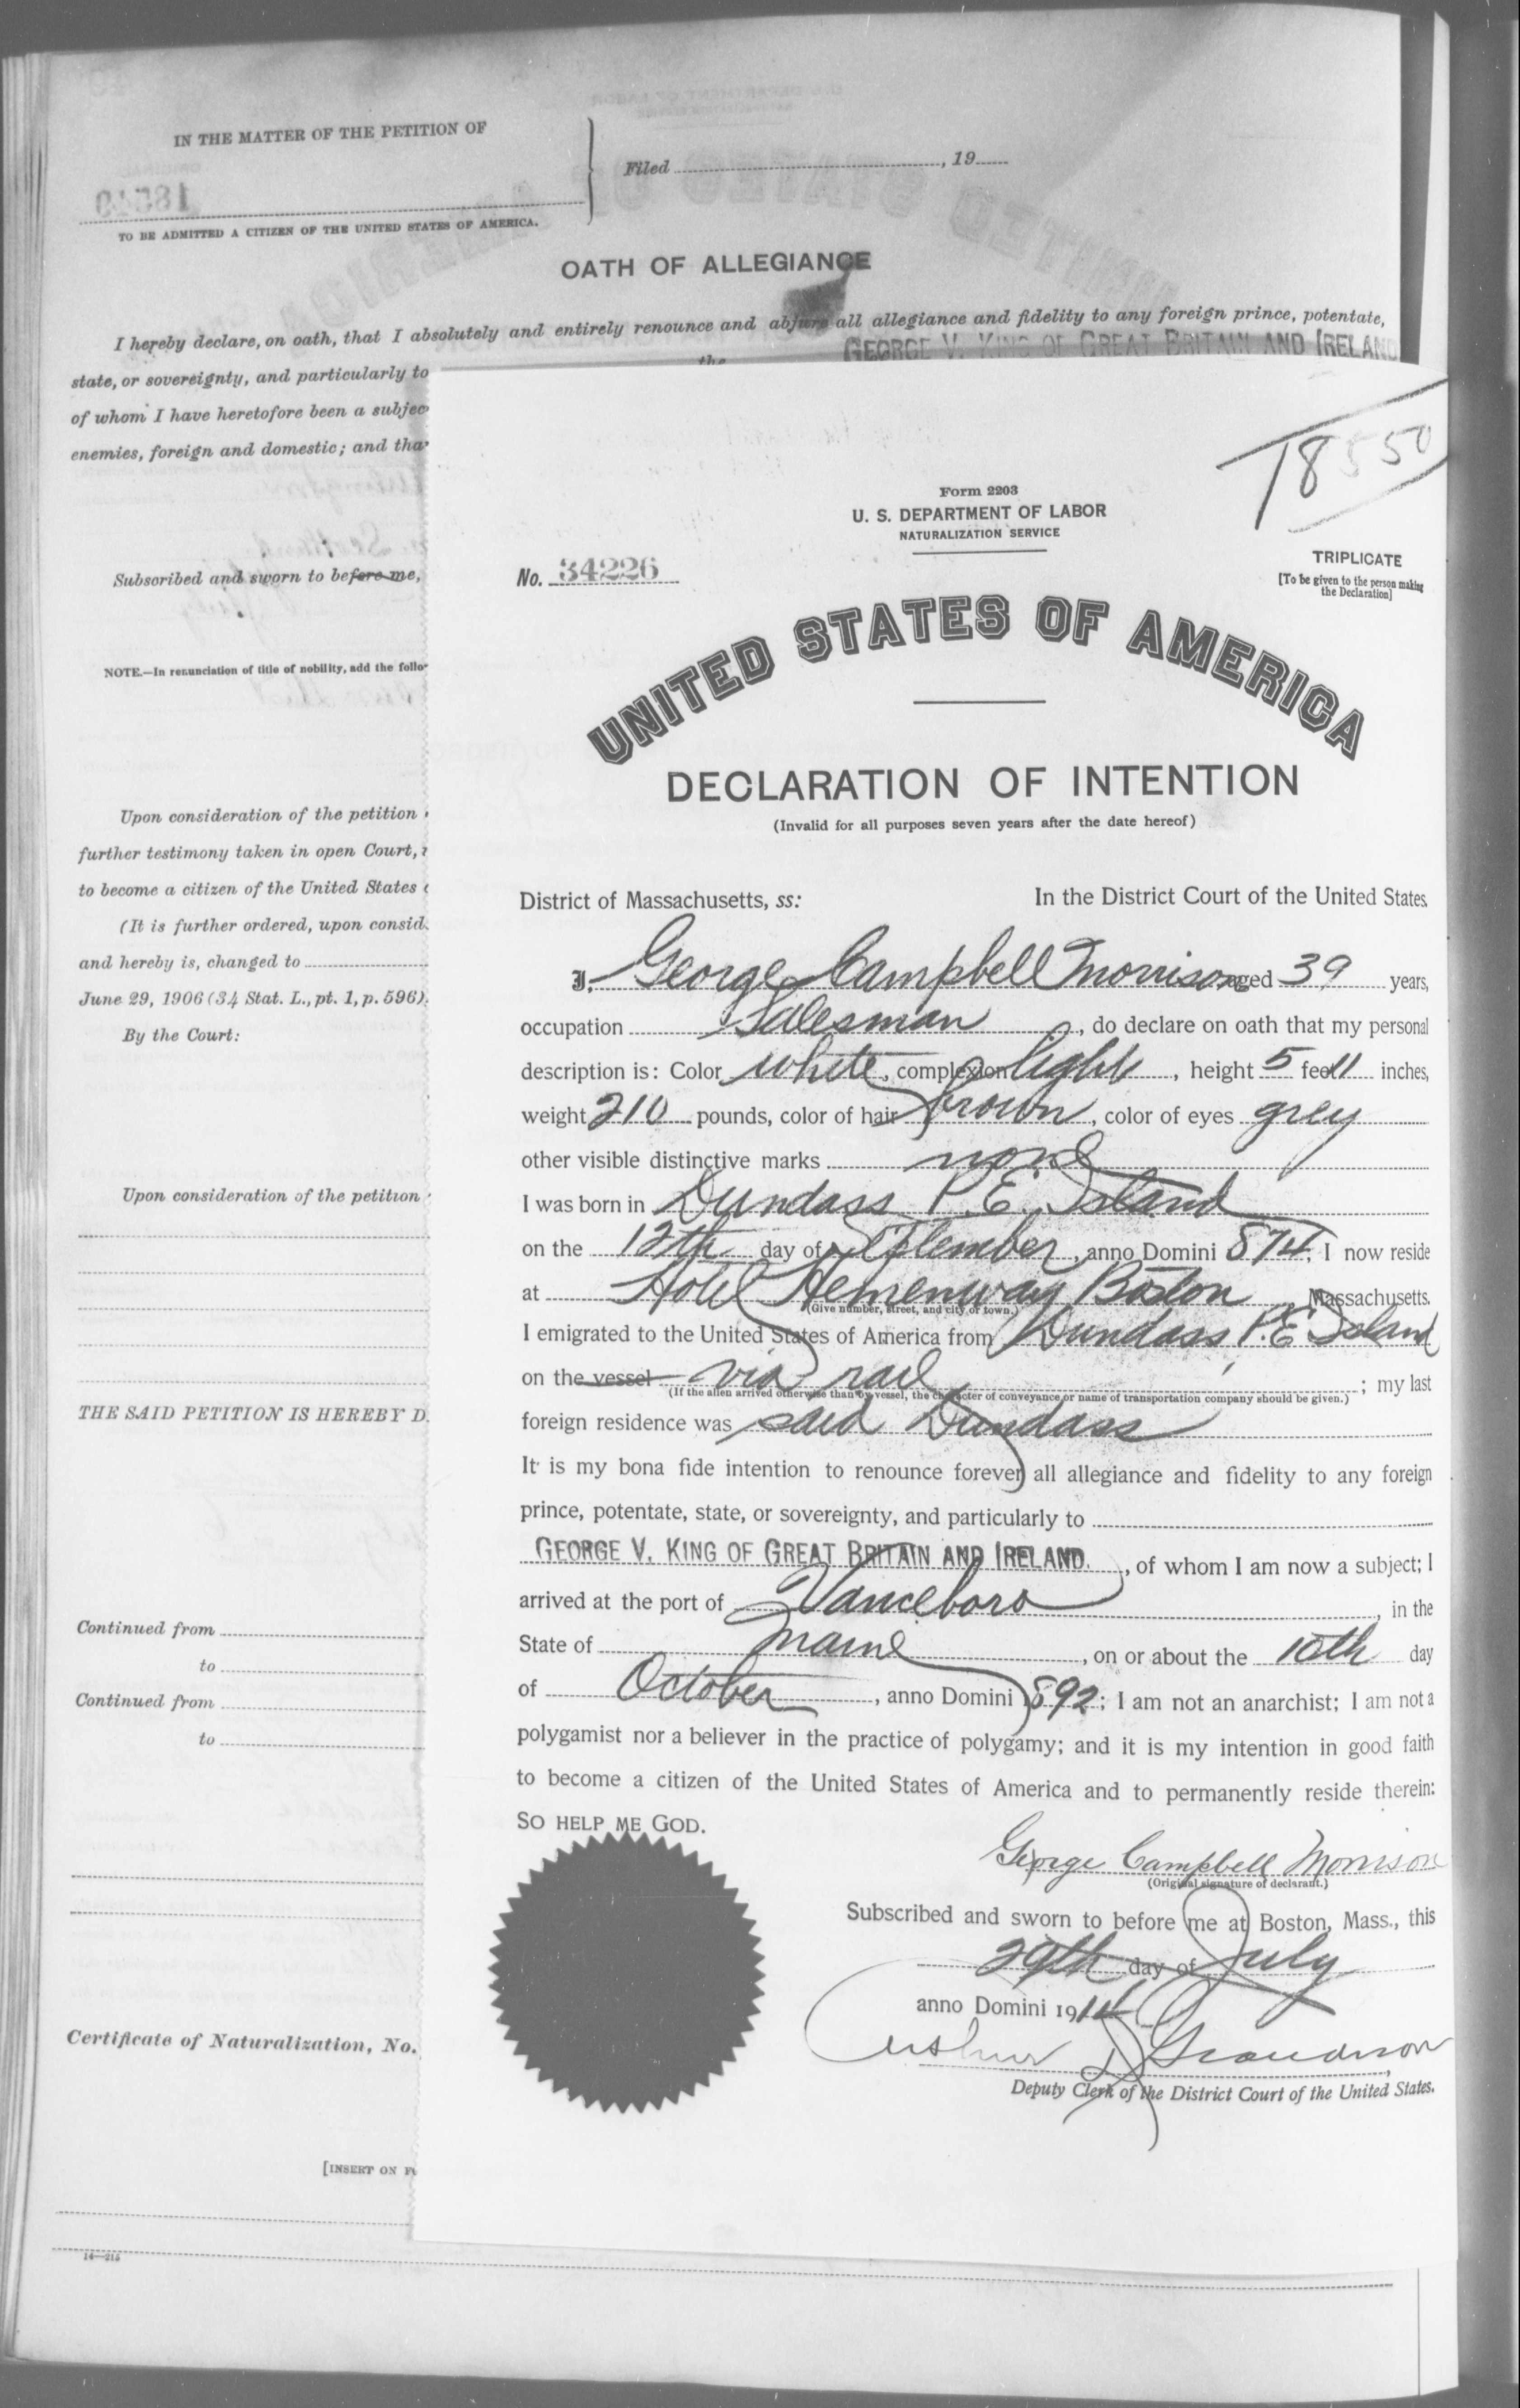 Petition for Naturalization of George Campbell Morrison